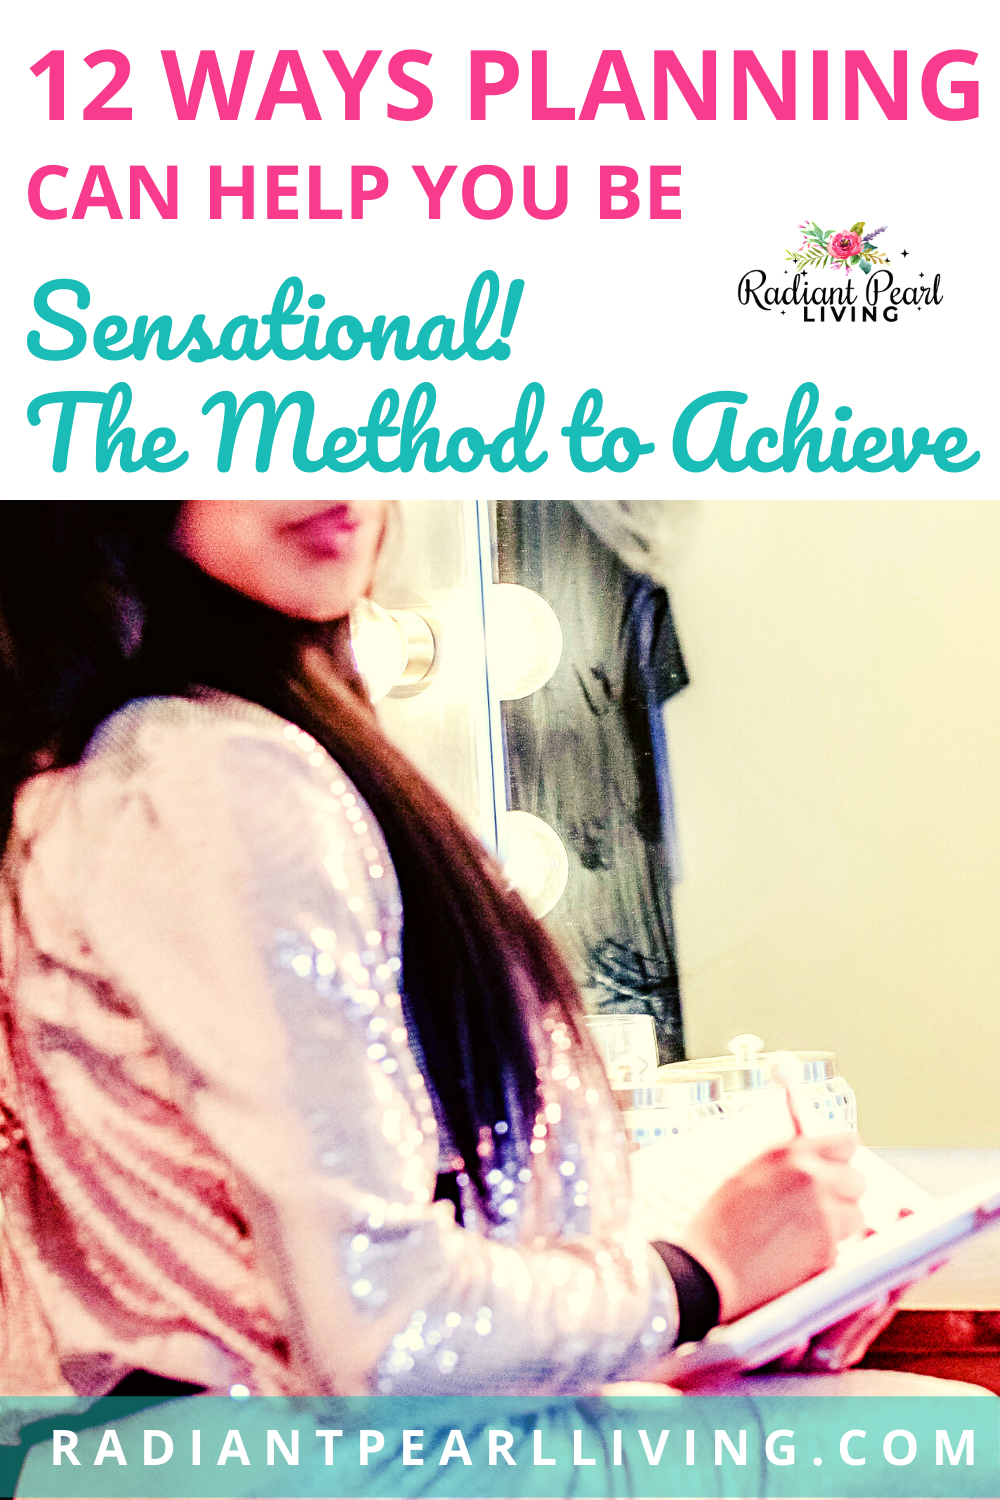 Ready to be sensational? And can planning help you be sensational? See 12 ways planning can help you be exceedingly or unexpectedly excellent or great. This simple method will make you achieve your goals in less time.